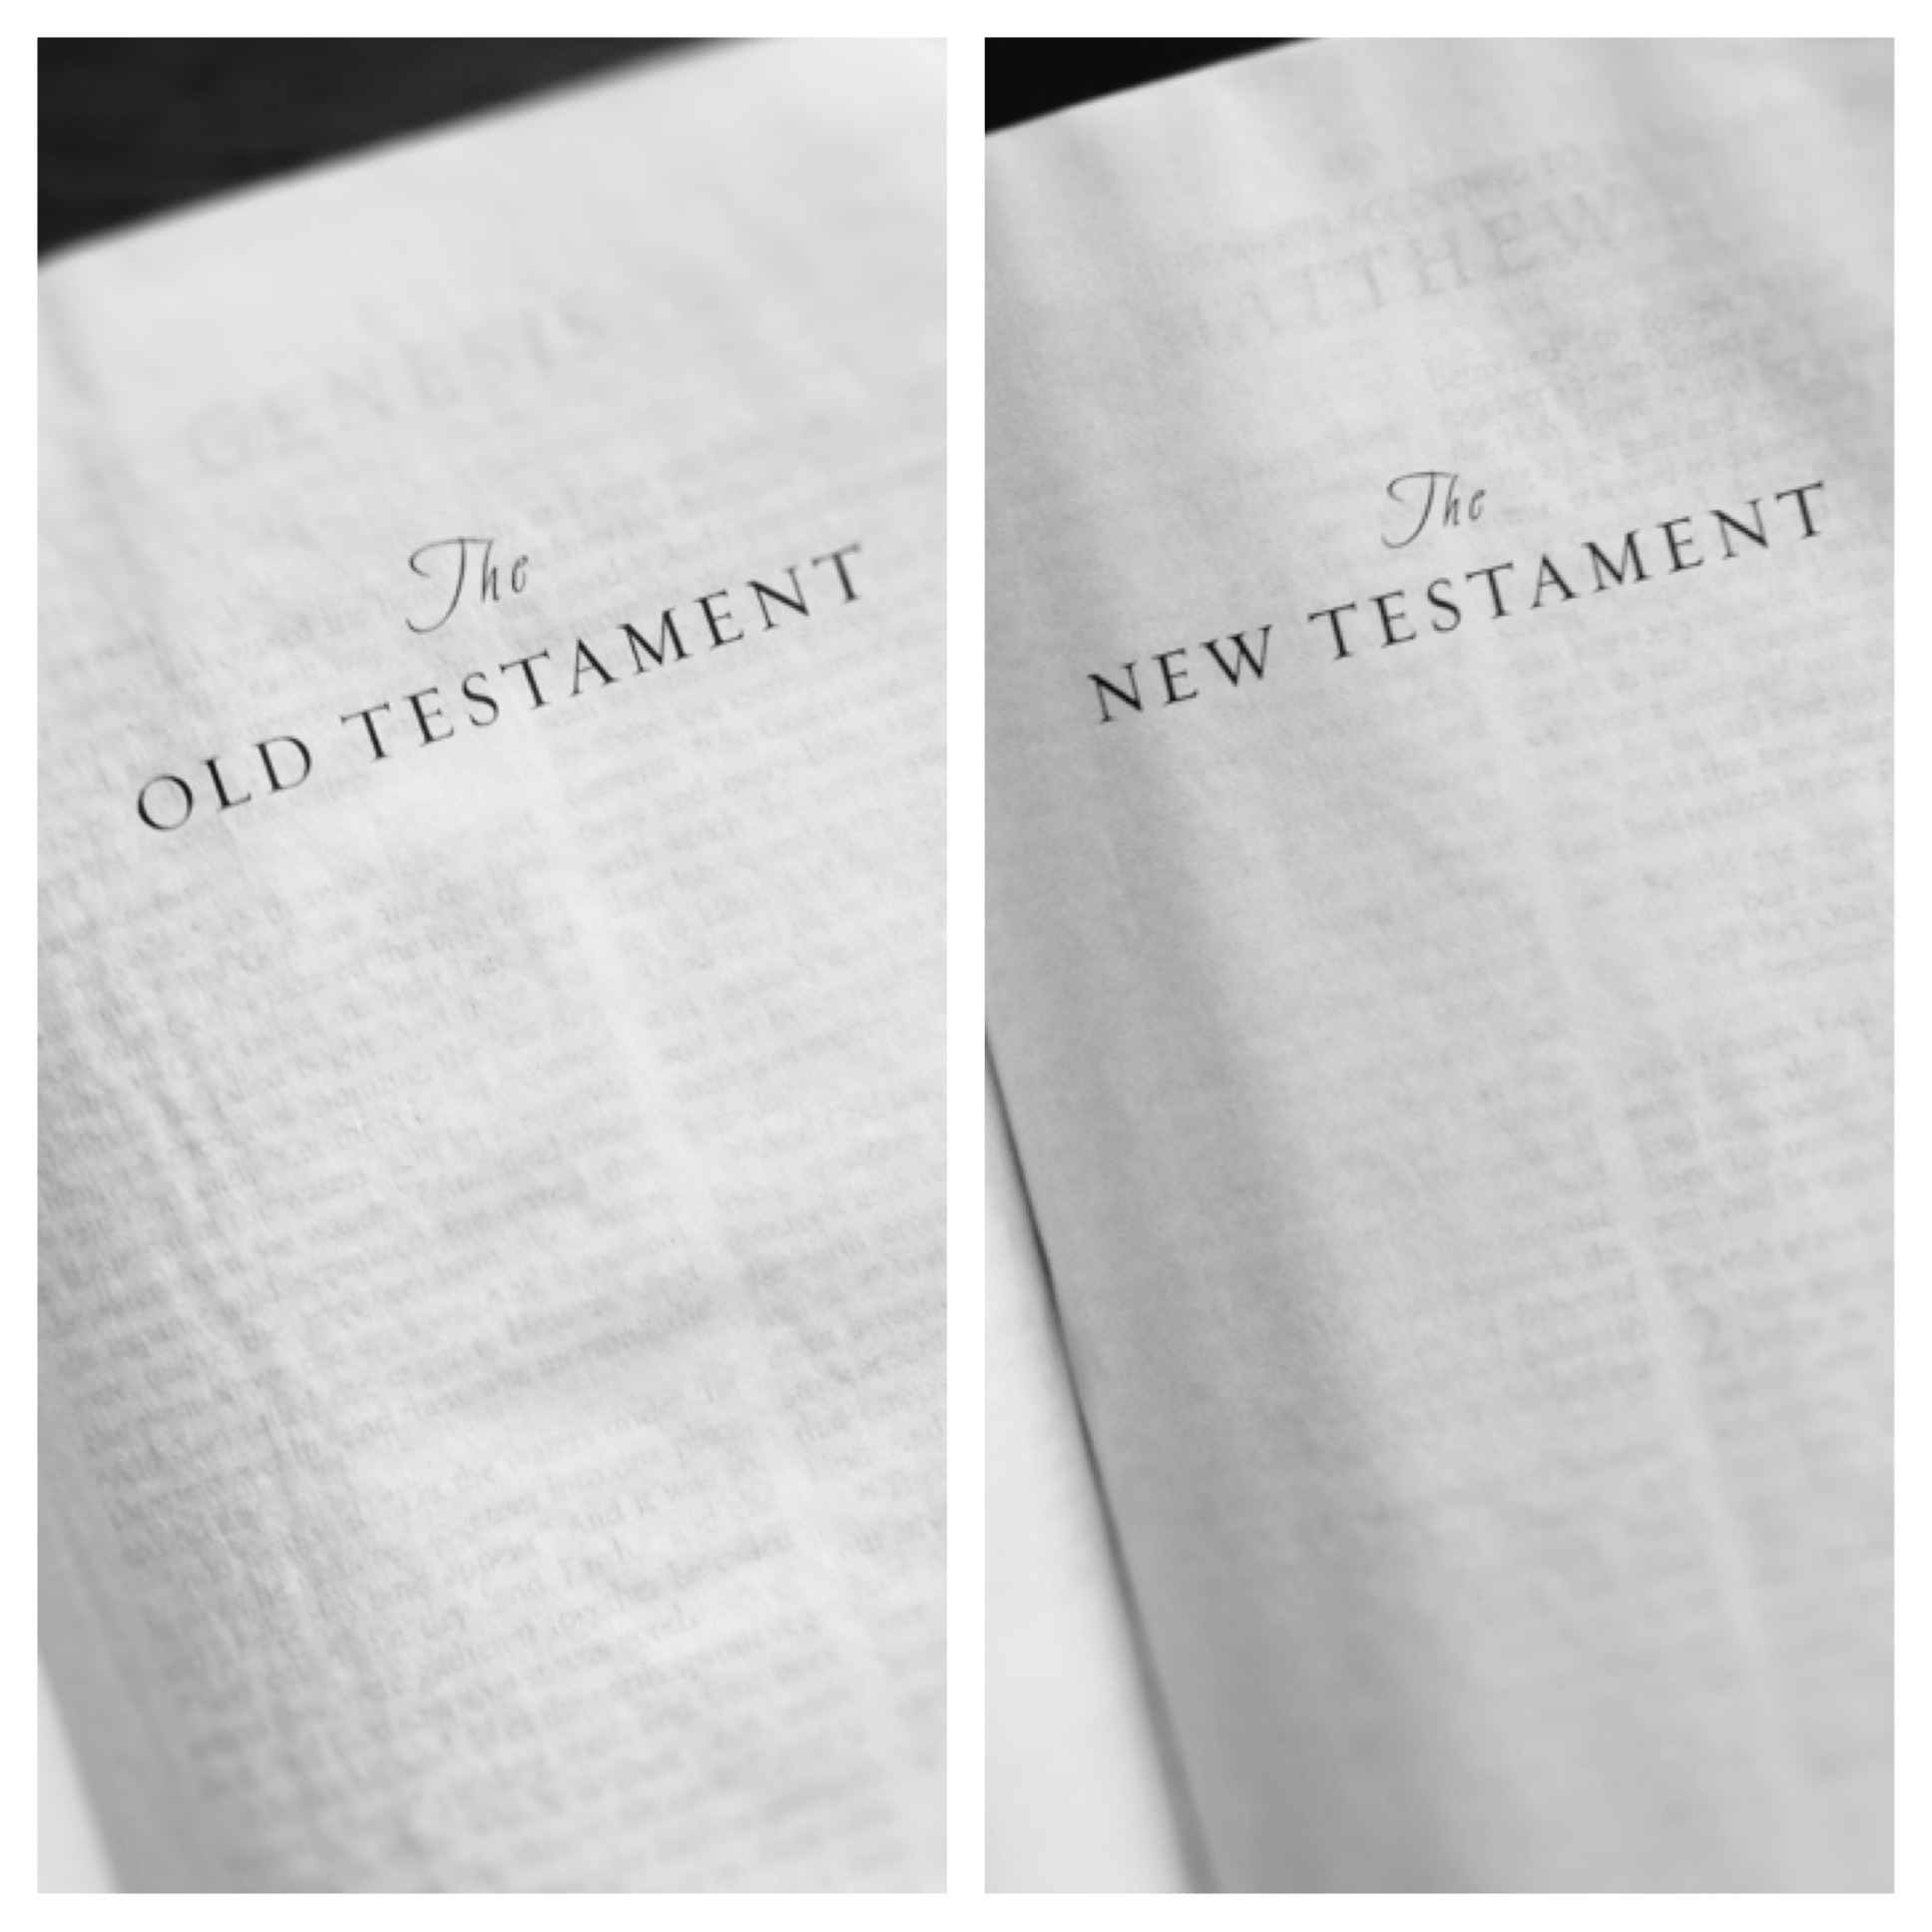 the old testament is the new It is important to understand the fullness of god's message to the churches, and a great way of doing this is reading the old and new testaments simultaneously.